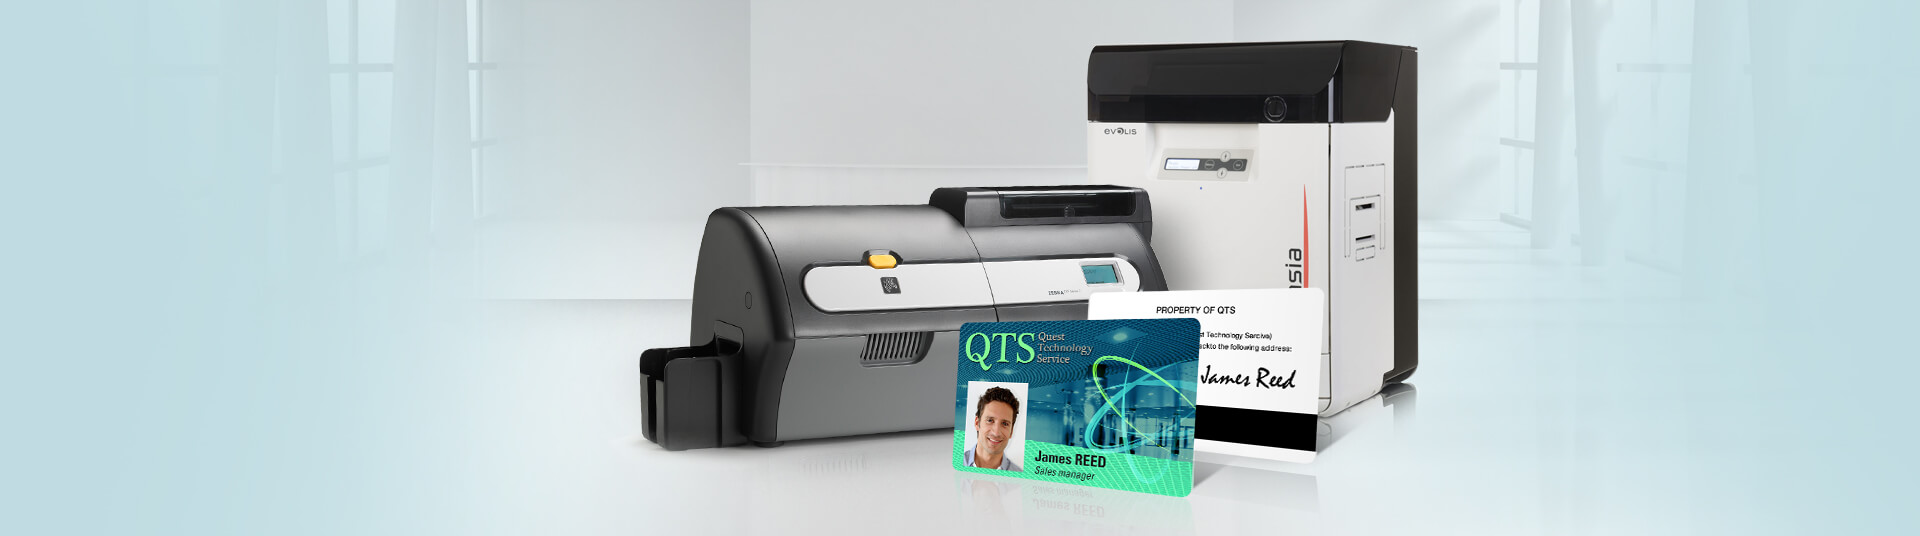 Alphacard Id Card Dual-sided Printers